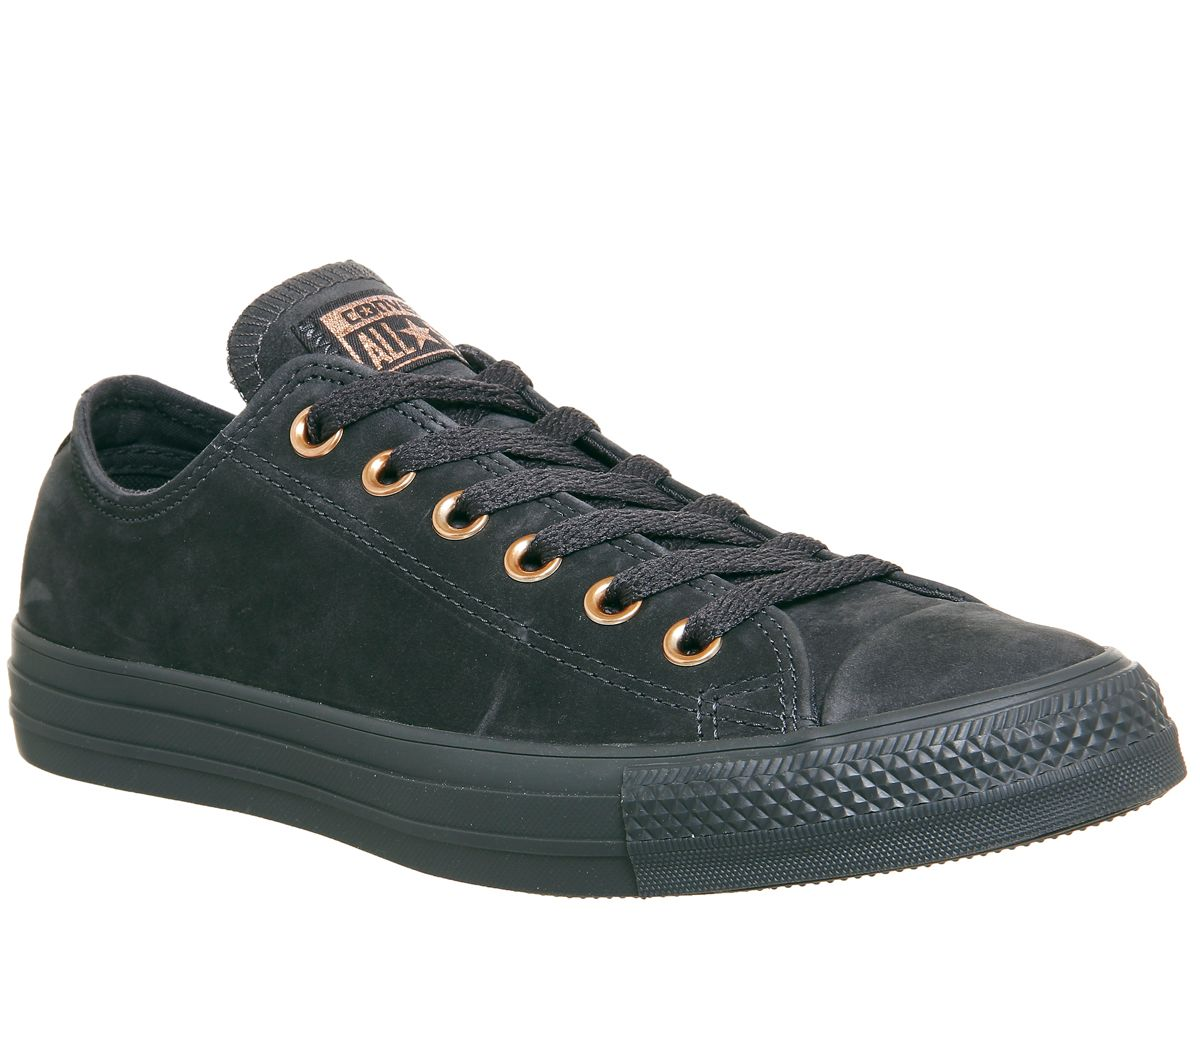 Converse Converse Allstar Low Leather Trainers, Black